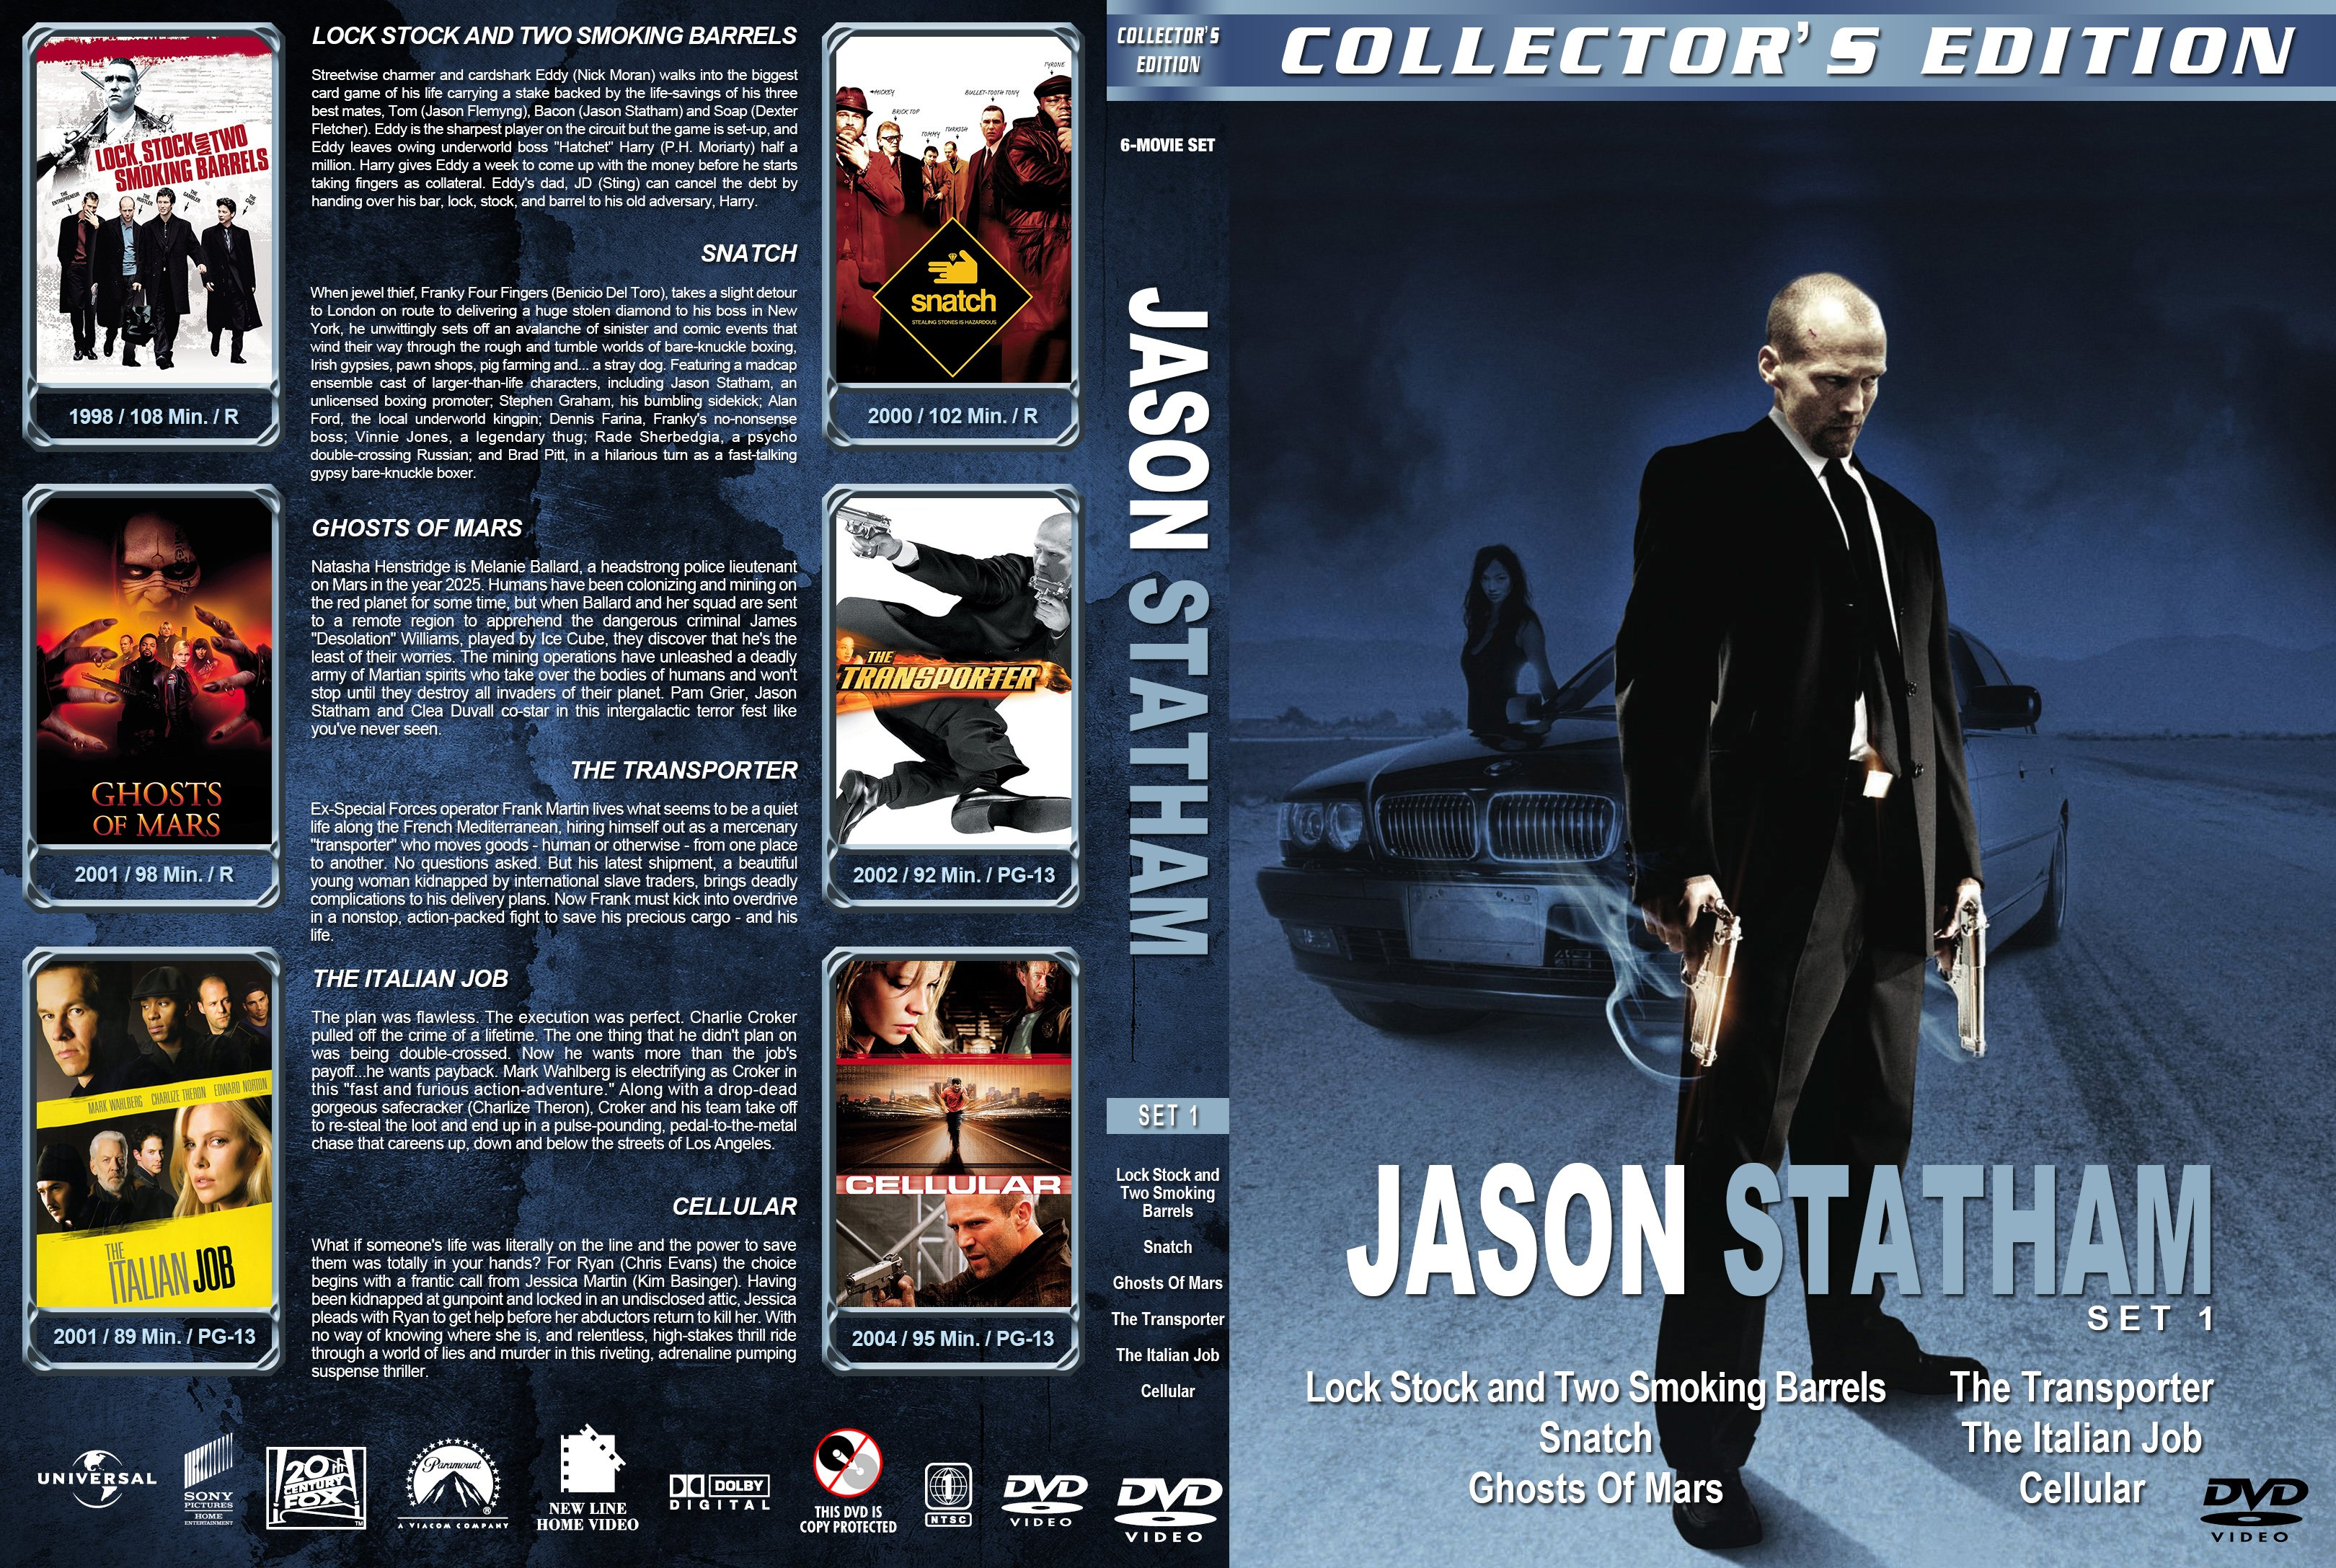 Movie starring ice cube jason statham